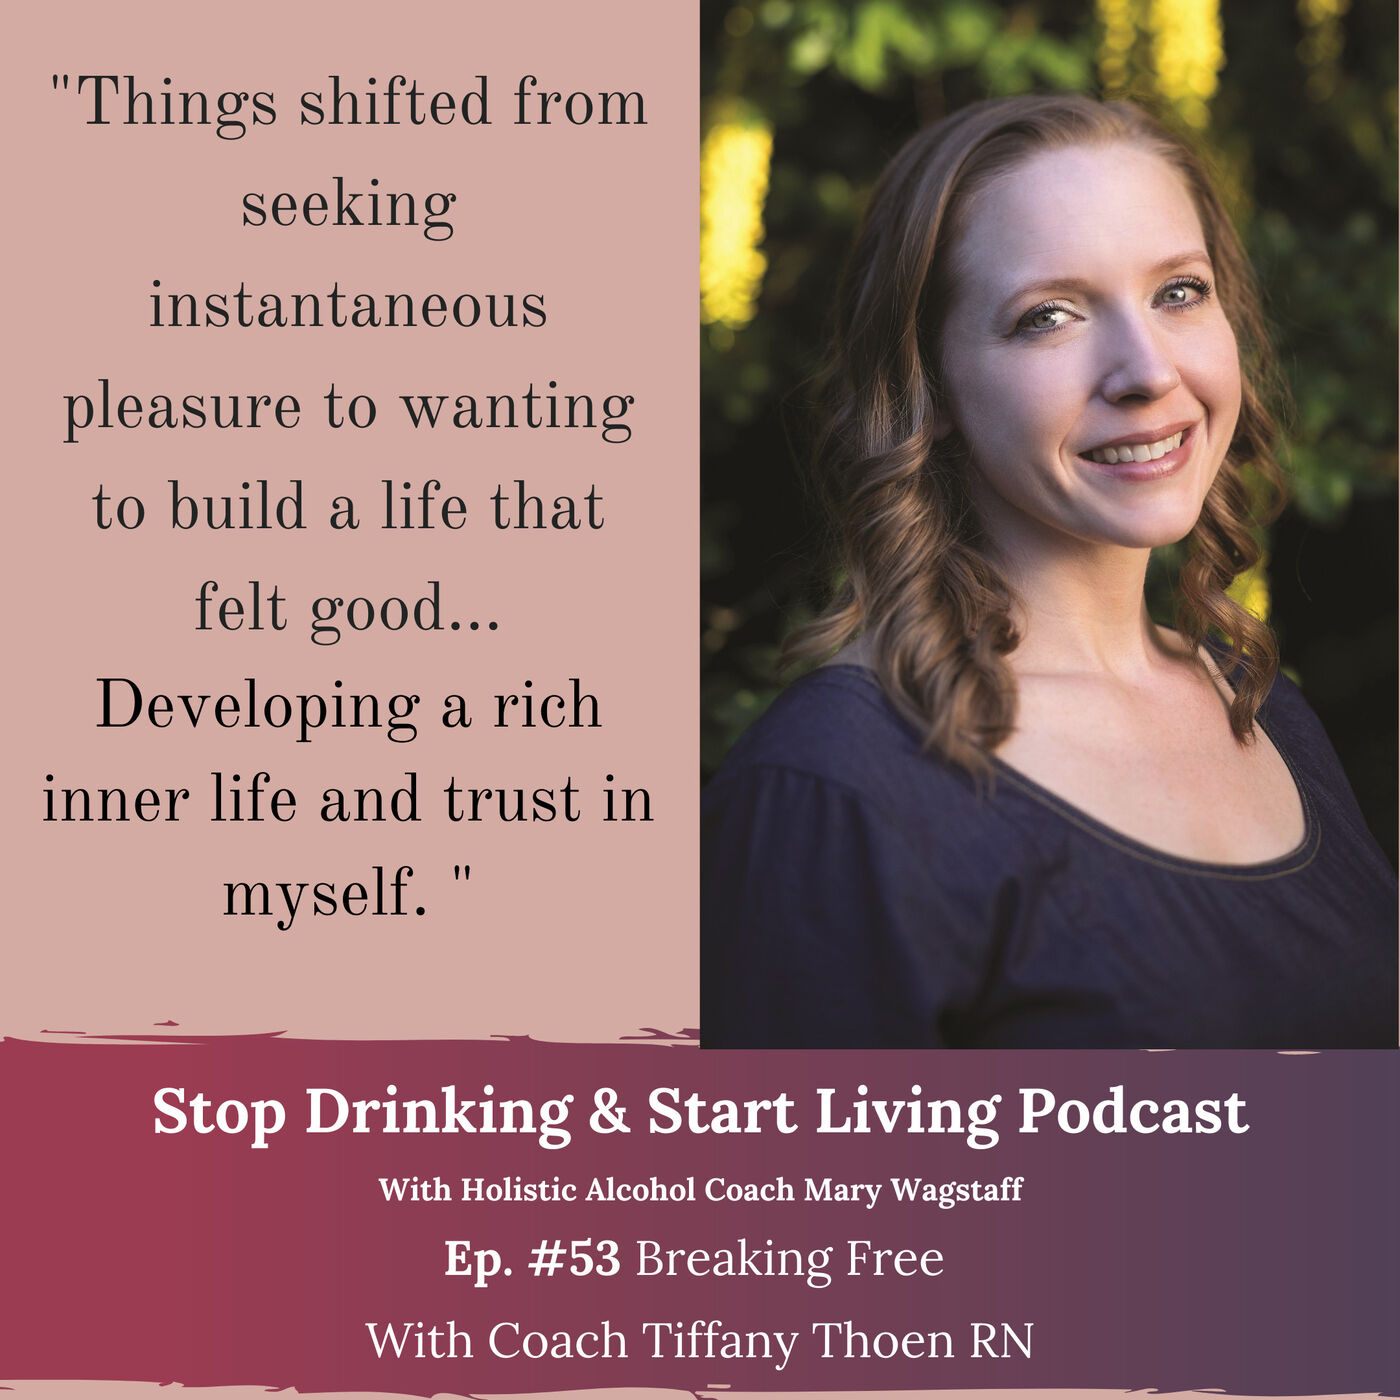 Ep. #53 Breaking Free With Coach Tiffany Thoen RN